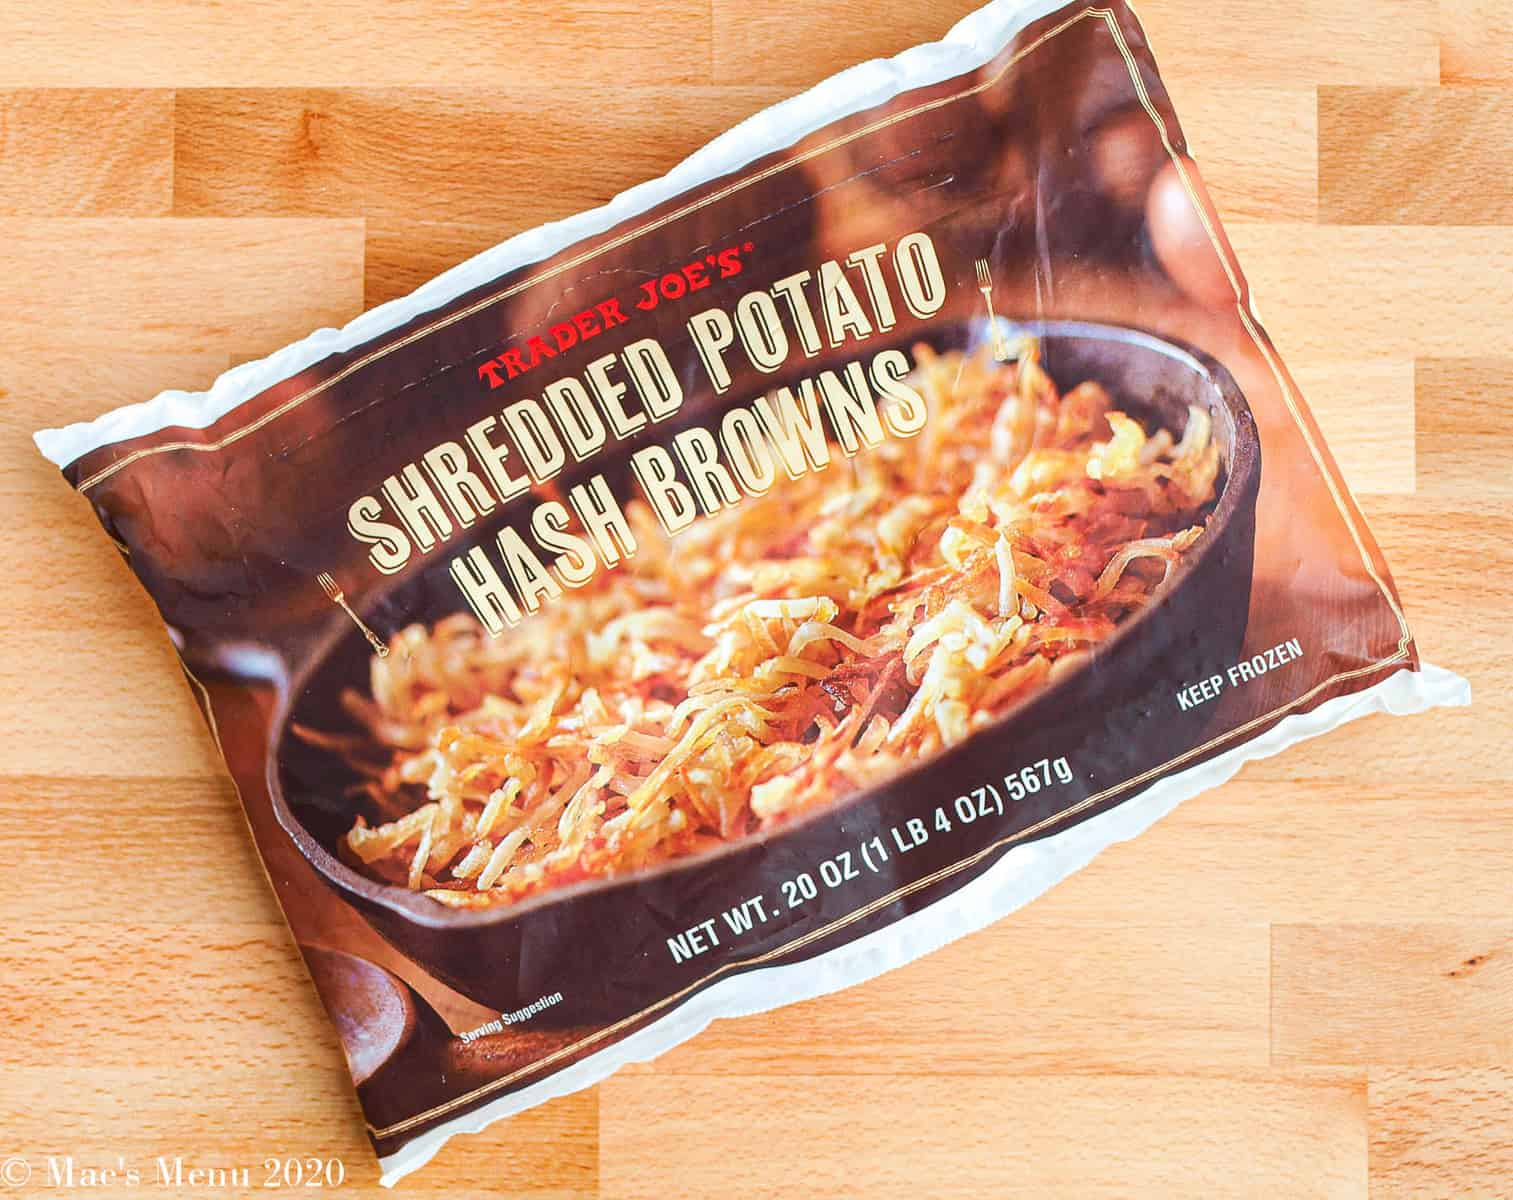 An overhead shot of a bag of Trader Joe's Shredded Potato Hash Browns.